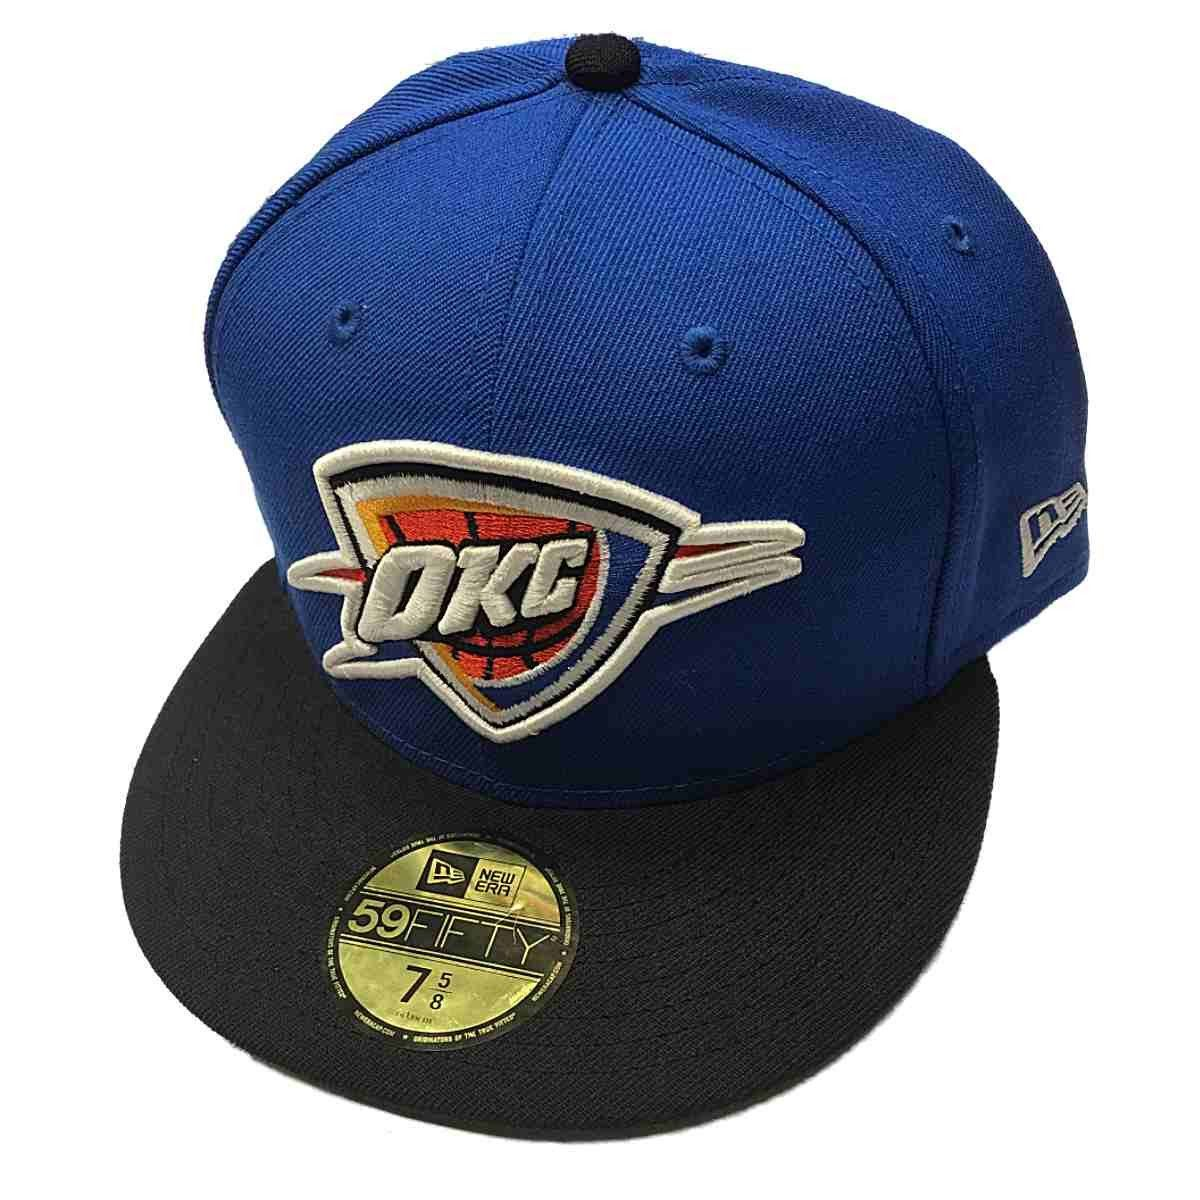 ca5c5e6e45d Oklahoma City Thunder New Era Blue 59Fifty Flat Bill Fitted Hat Cap ...